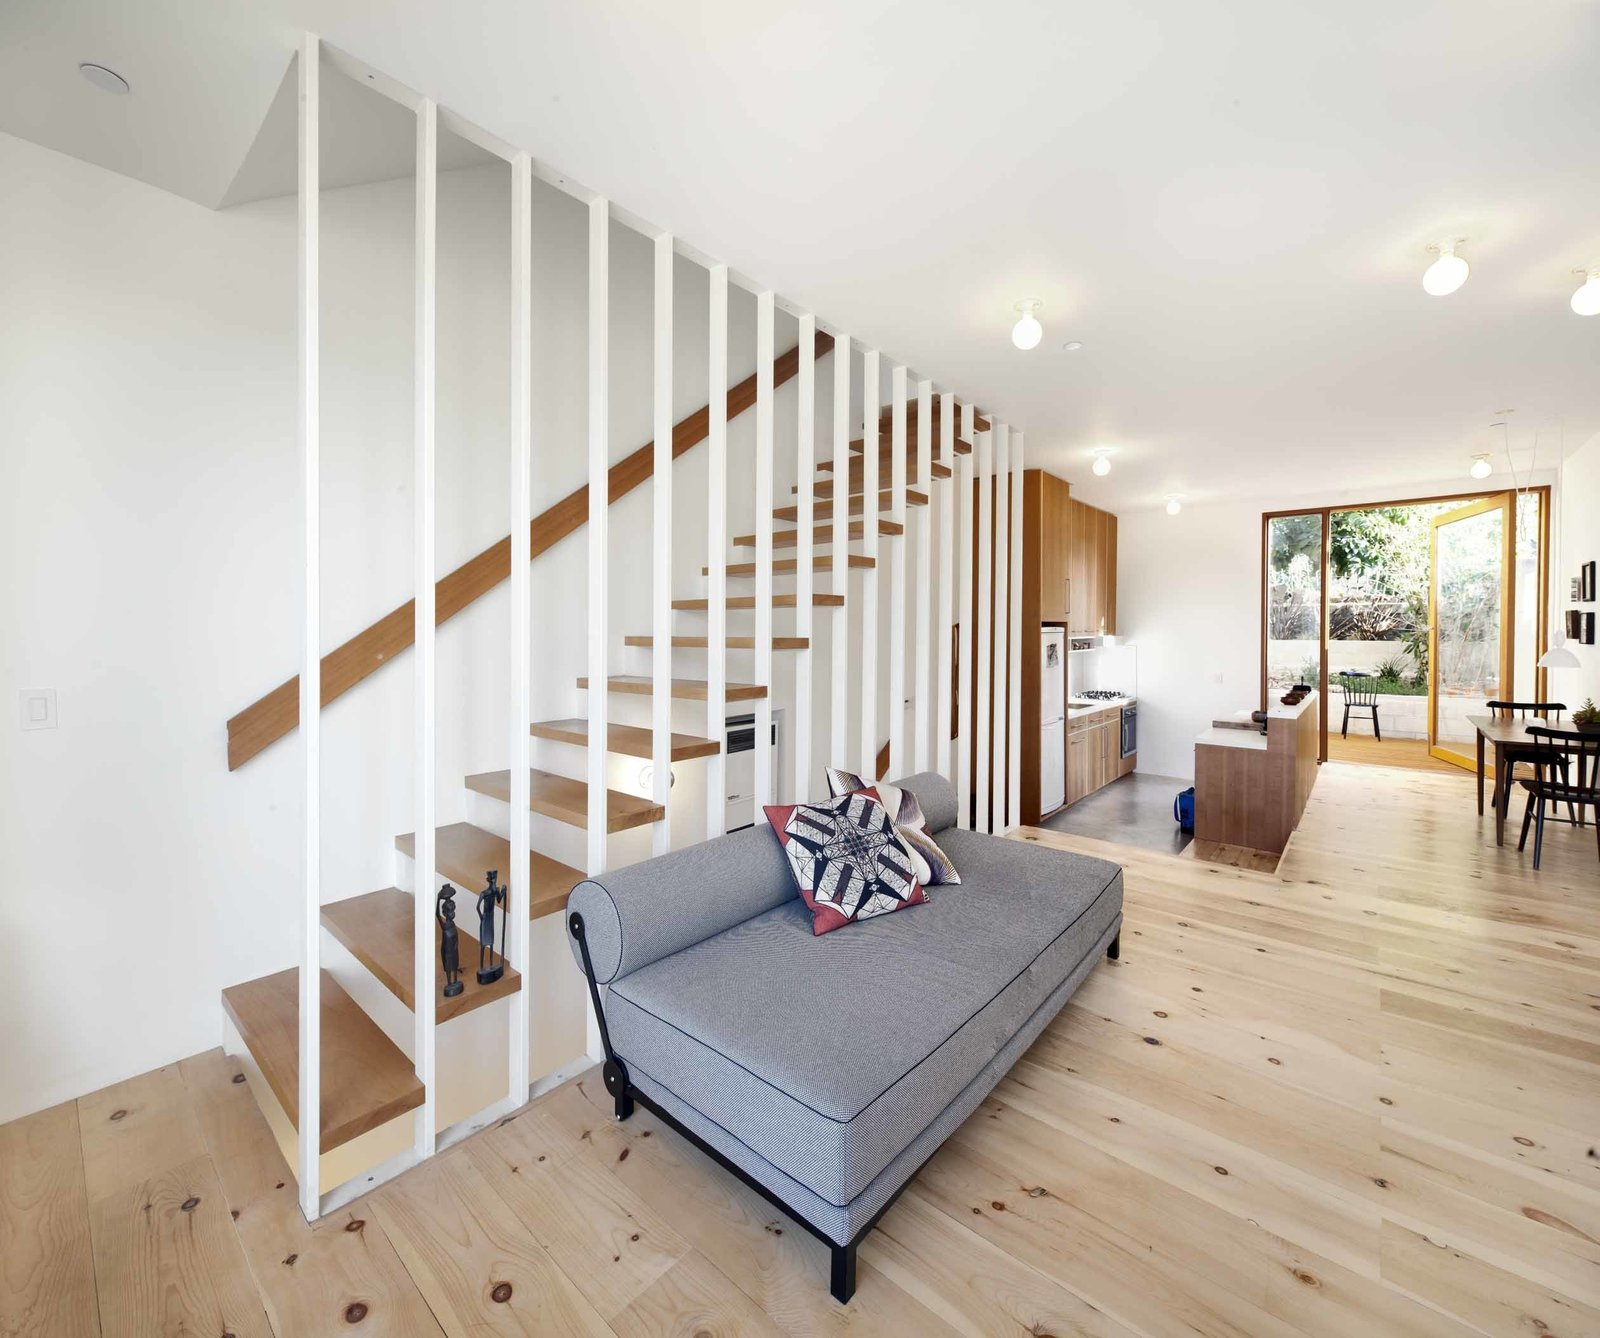 """The first floor contains the living room and kitchen, which opens out onto a petite back garden and an avocado tree. The kitchen is slightly sunken and has a polished concrete floor, which subtly demarcates it from the rest of the space. Materials in the kitchen set the home's material palette, with vertical Douglas fir cabinets and the same 3"""" x 6"""" subway tiles that appear in the bathroom for the backsplash. The Fisher & Paykel dishwasher is hidden inside the island: """"I wanted the island to look more like a credenza or piece of furniture,"""" says Storey.  The wood floor boards in the living room are white pine, a soft wood Storey chose for its knotty look. """"The wood dries a lot over time, so small gaps have opened up between them. Because it's such a simple white space, it's nice to have that rough warmth and character in the floors.""""  Photo 2 of 9 in Home and Studio Maximizes Very Narrow Site in Echo Park"""